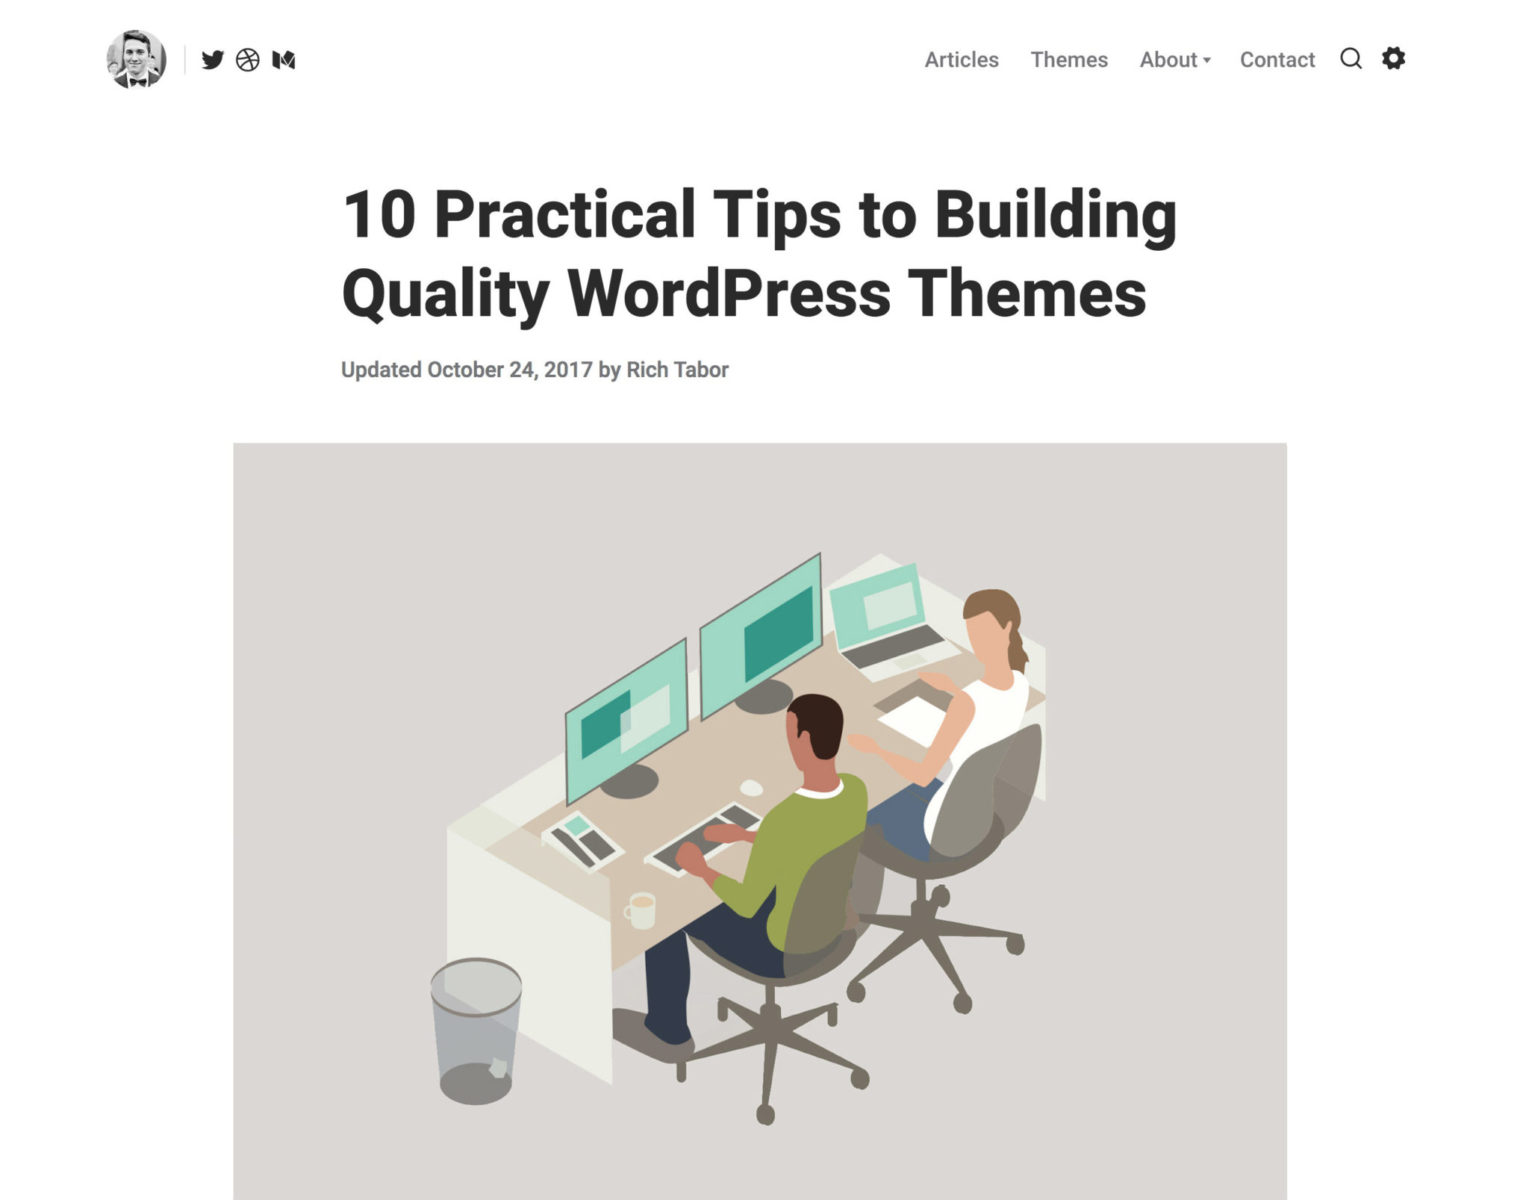 Tips for building themes